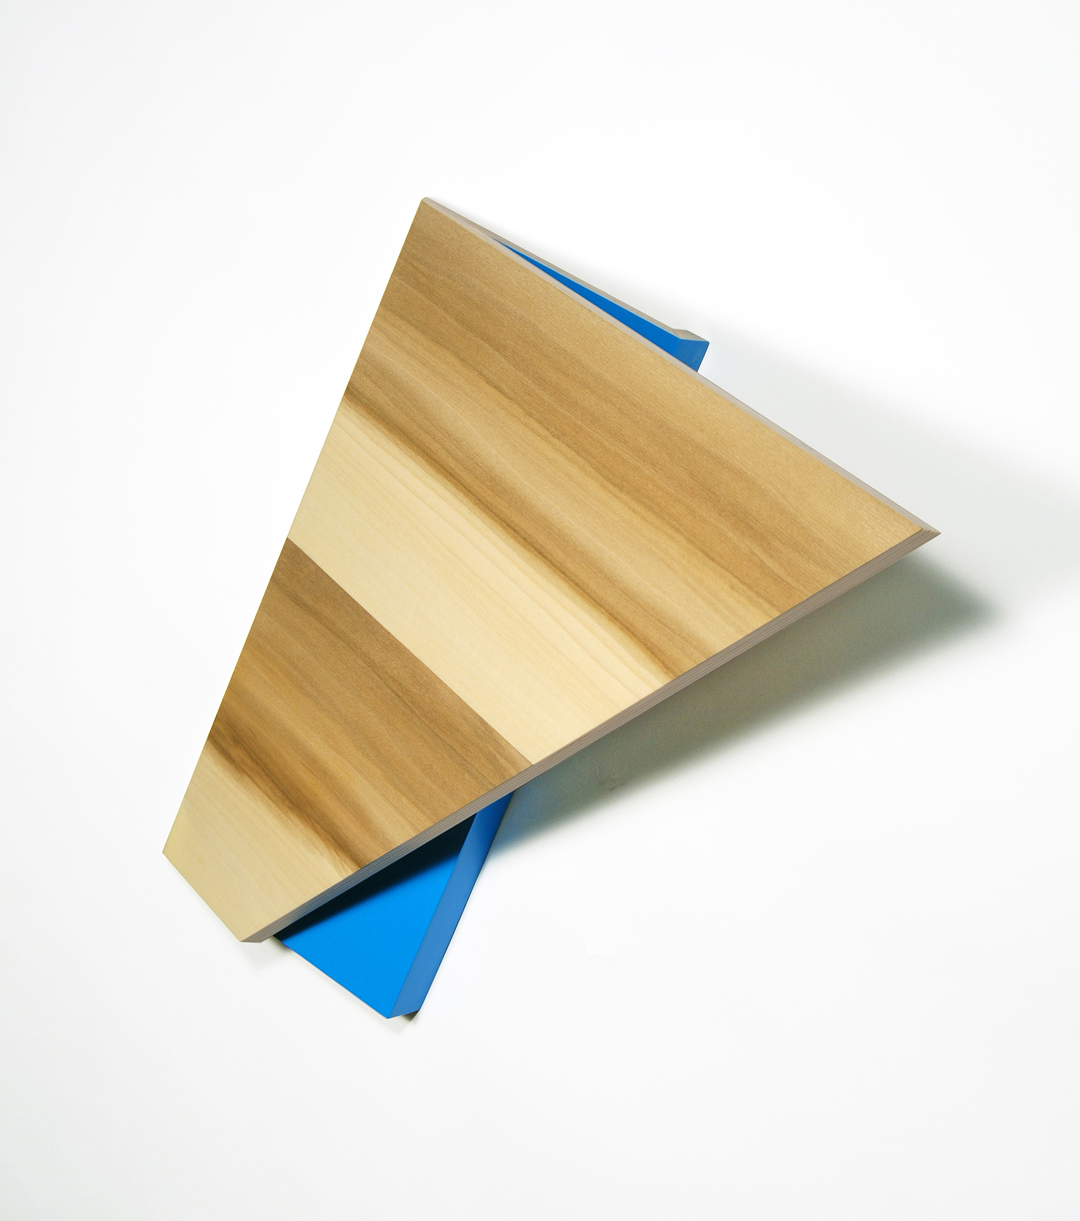 Richard Bottwin   Triangle.1   2018  Poplar veneer and acrylic paint on birch plywood  16 x 16 x 7 inches